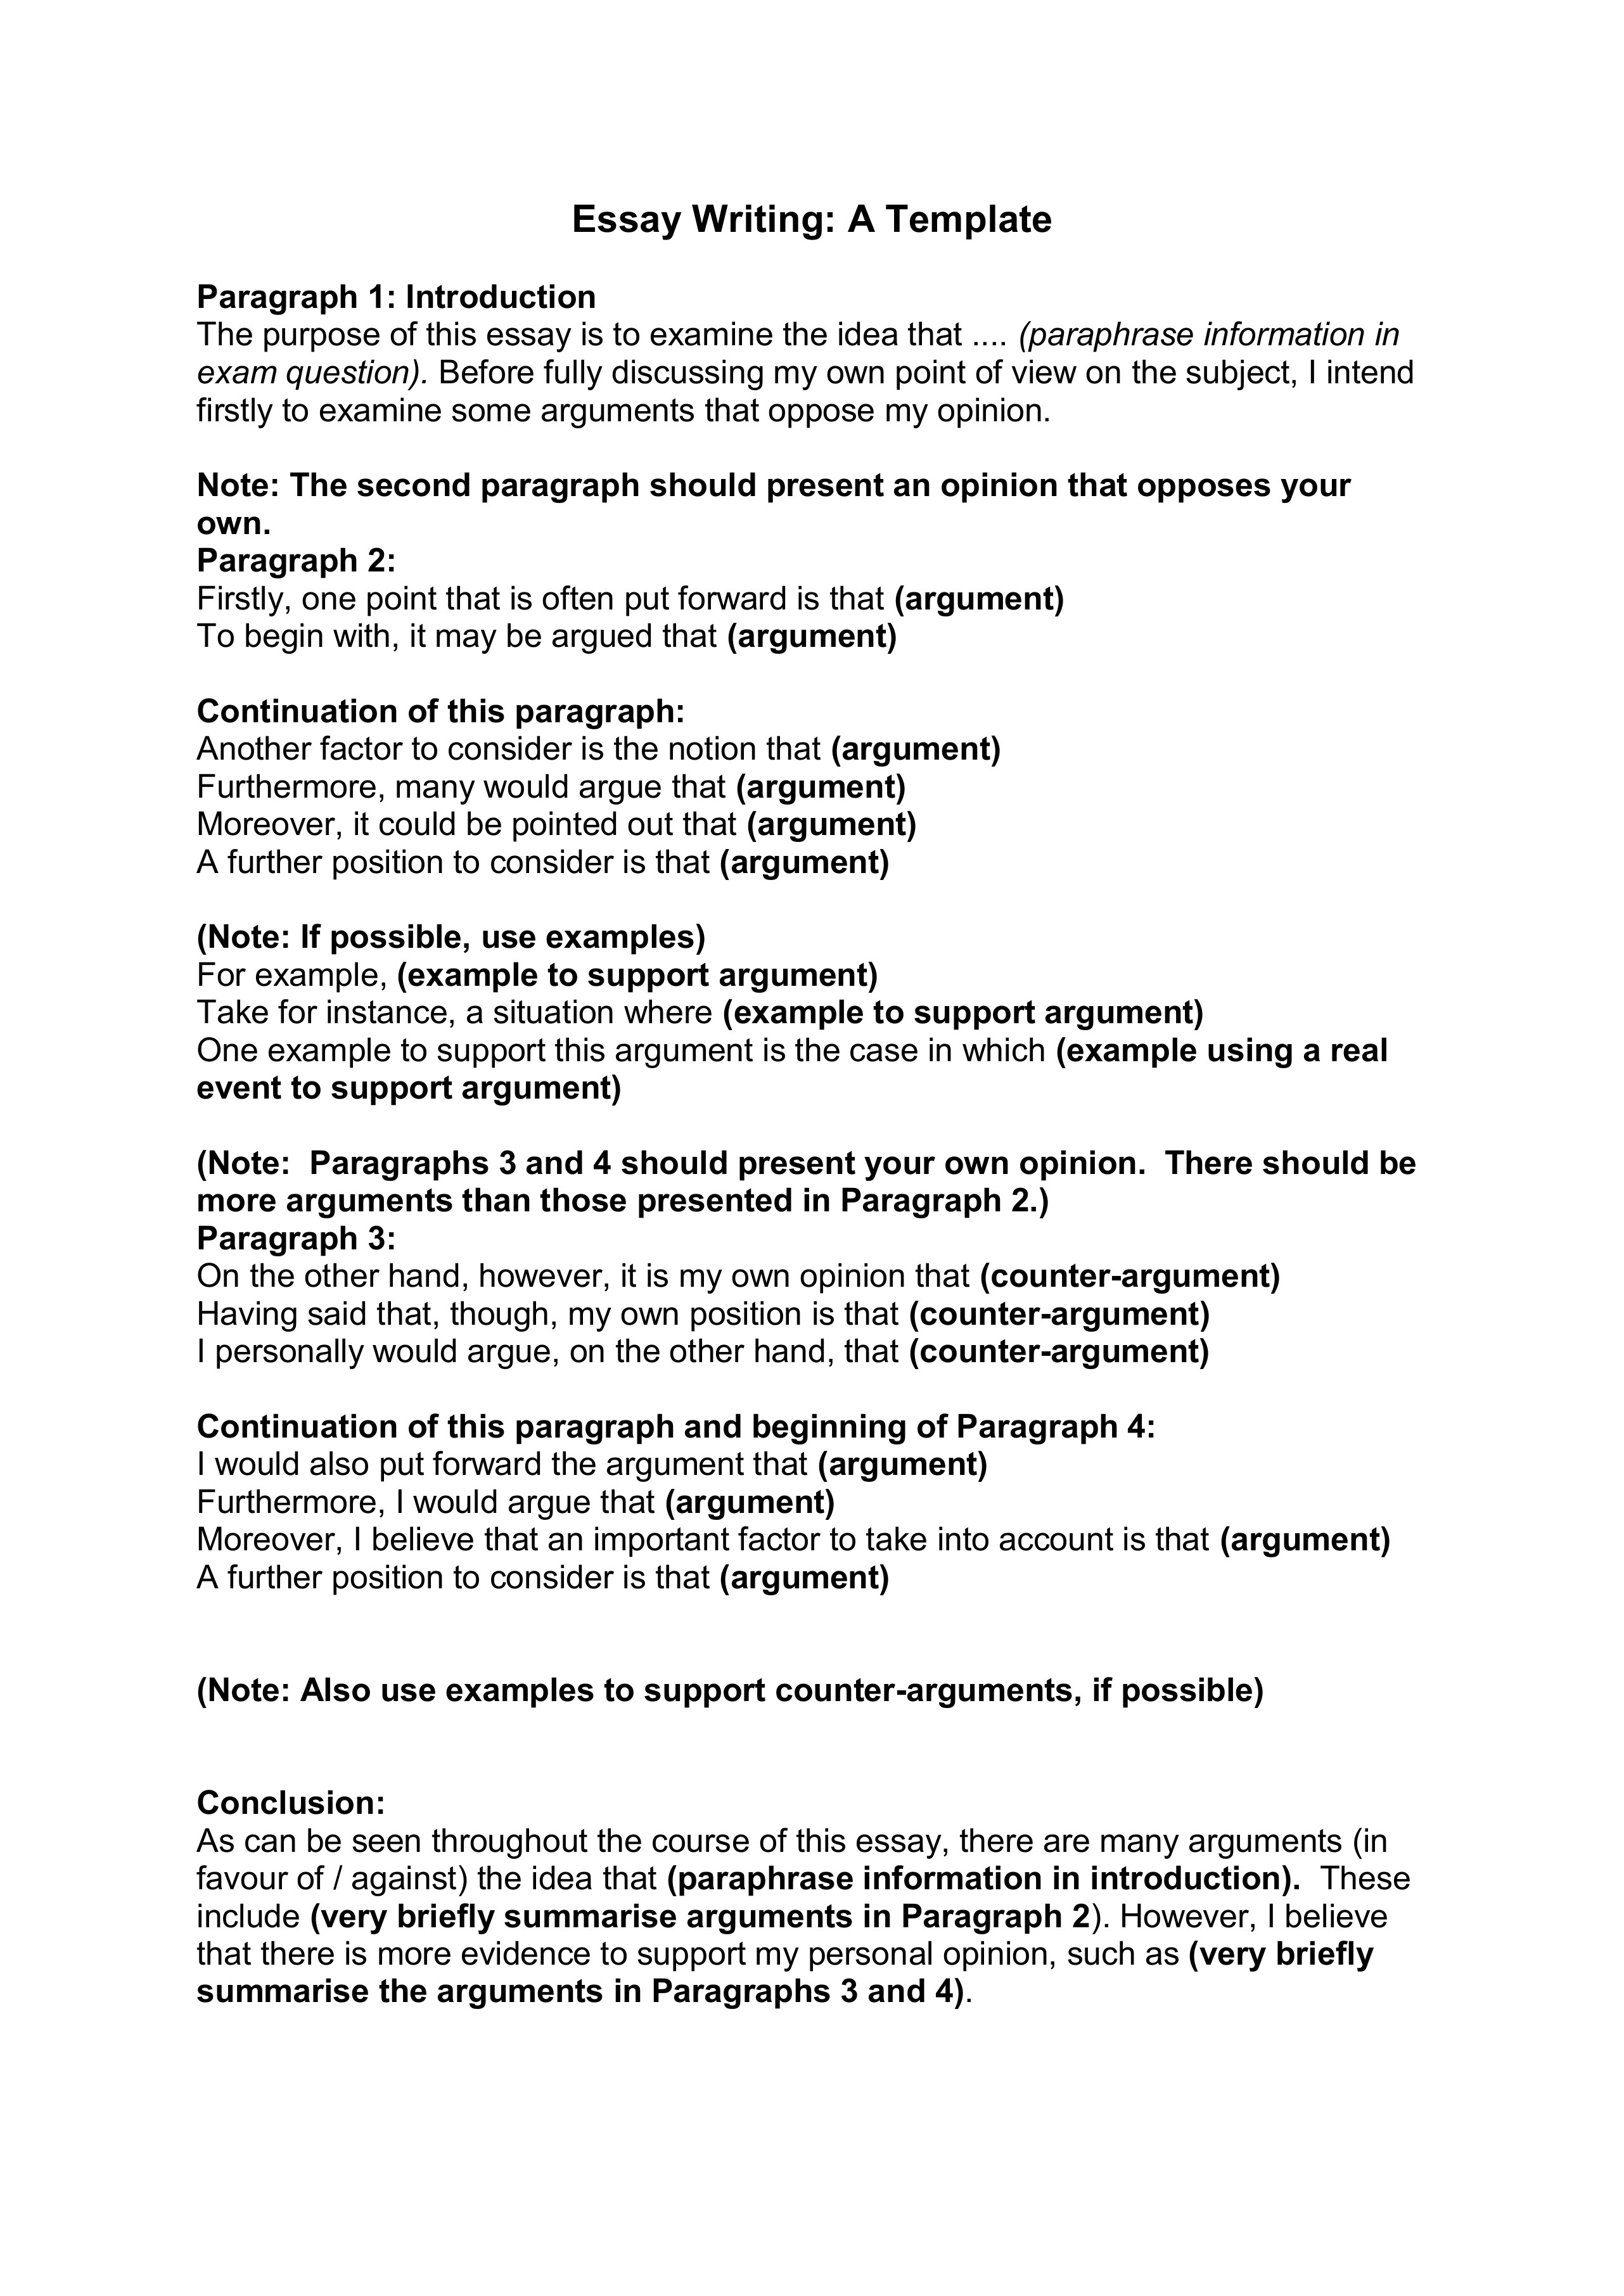 Essay On Myself In English  English Essay Internet also Easy Persuasive Essay Topics For High School Chapter  Comparison And Contrast  Mcgraw Hill Higher  Healthy Food Essays